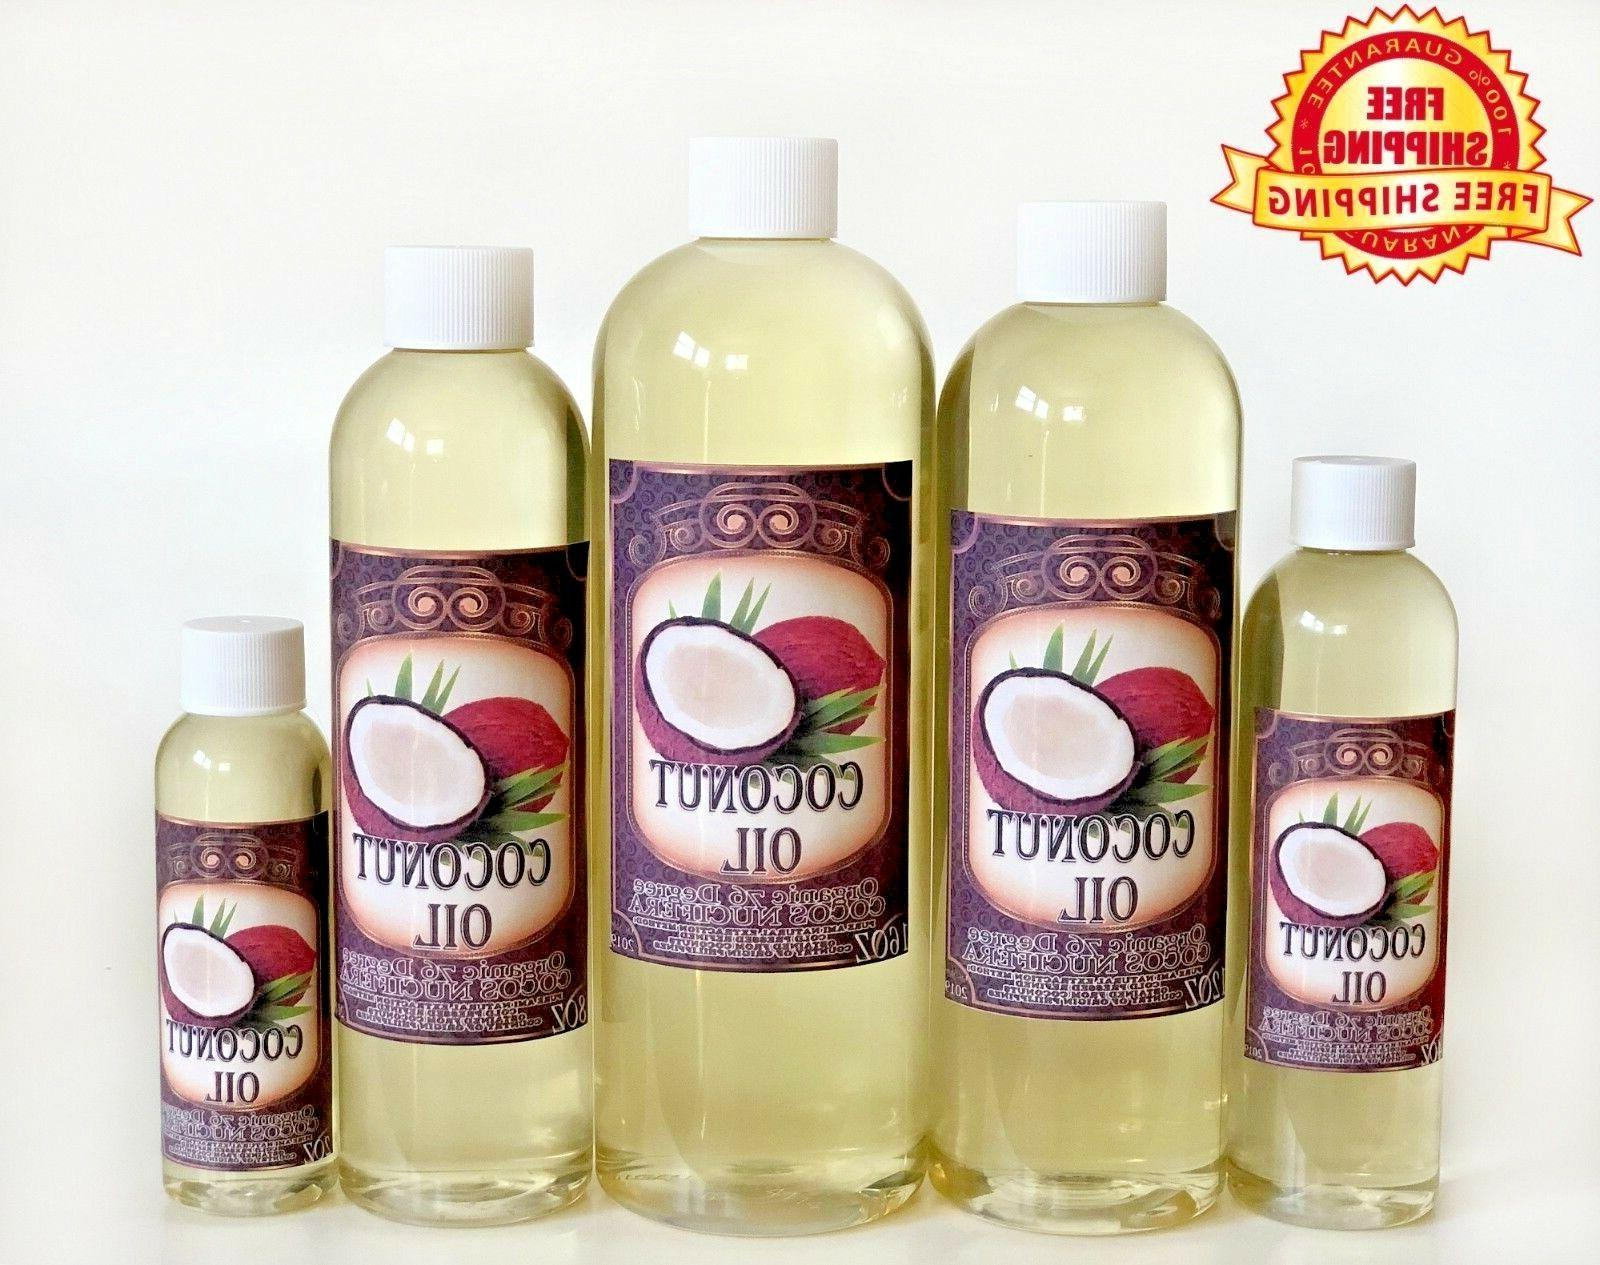 COCONUT OIL 76 DEGREE ORGANIC CARRIER REFINED COLD PRESSED 1